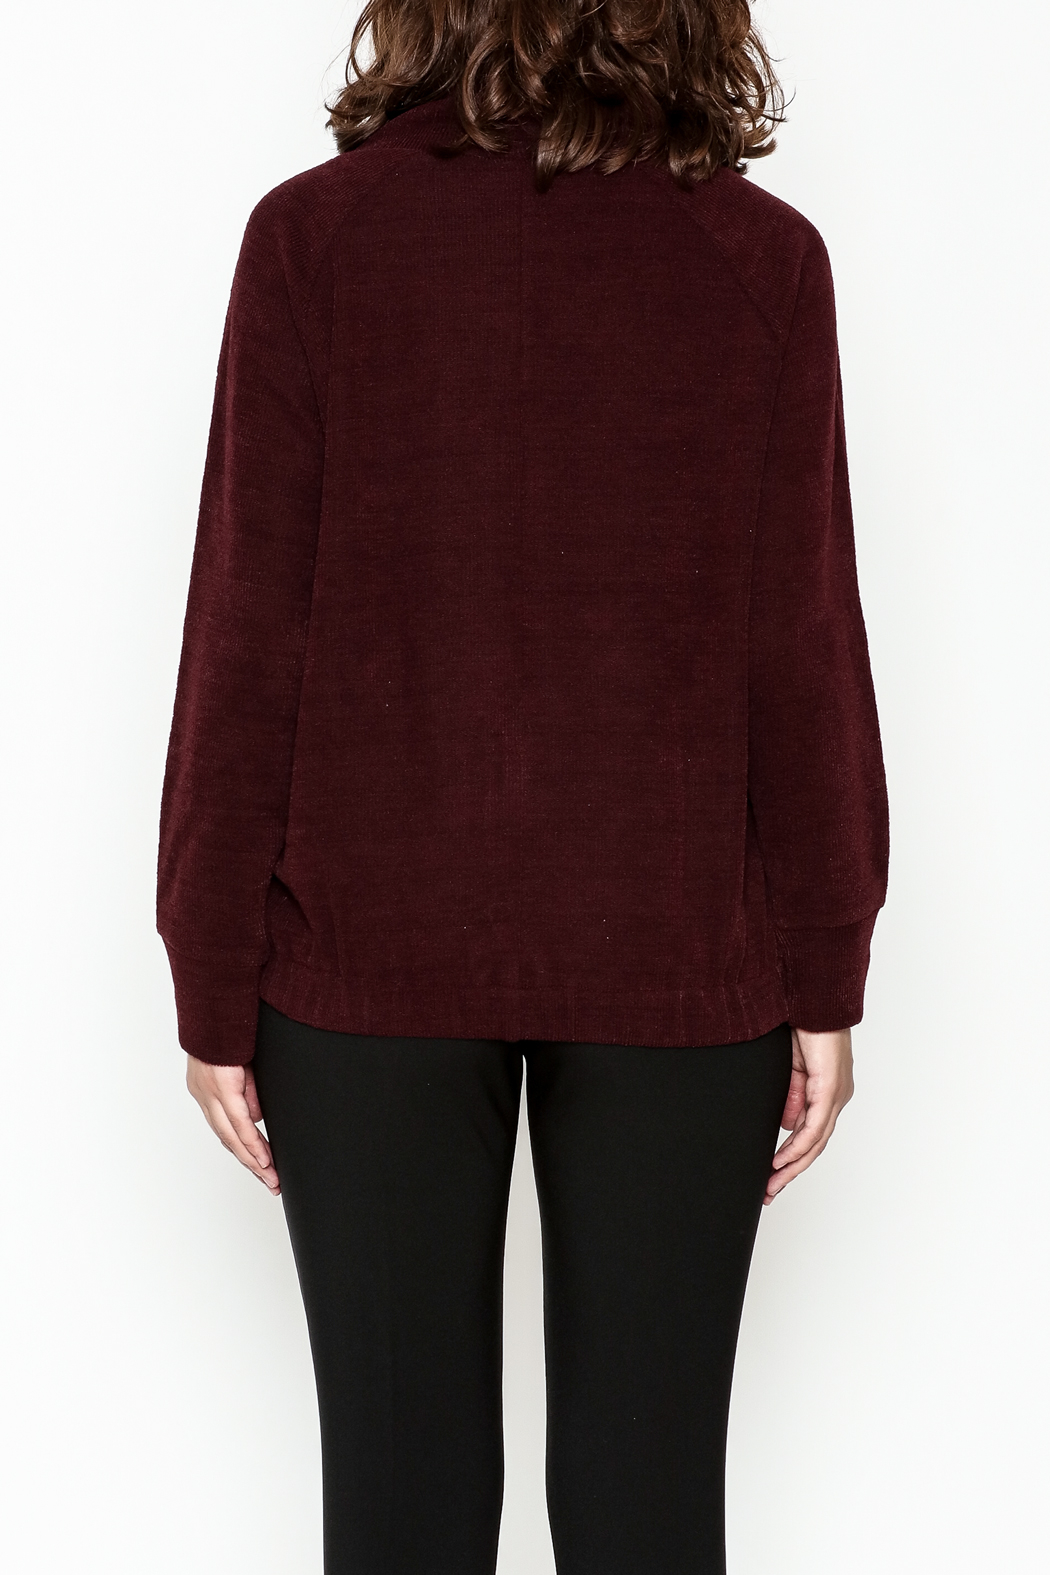 Lumiere Tie Turtleneck Sweater - Back Cropped Image